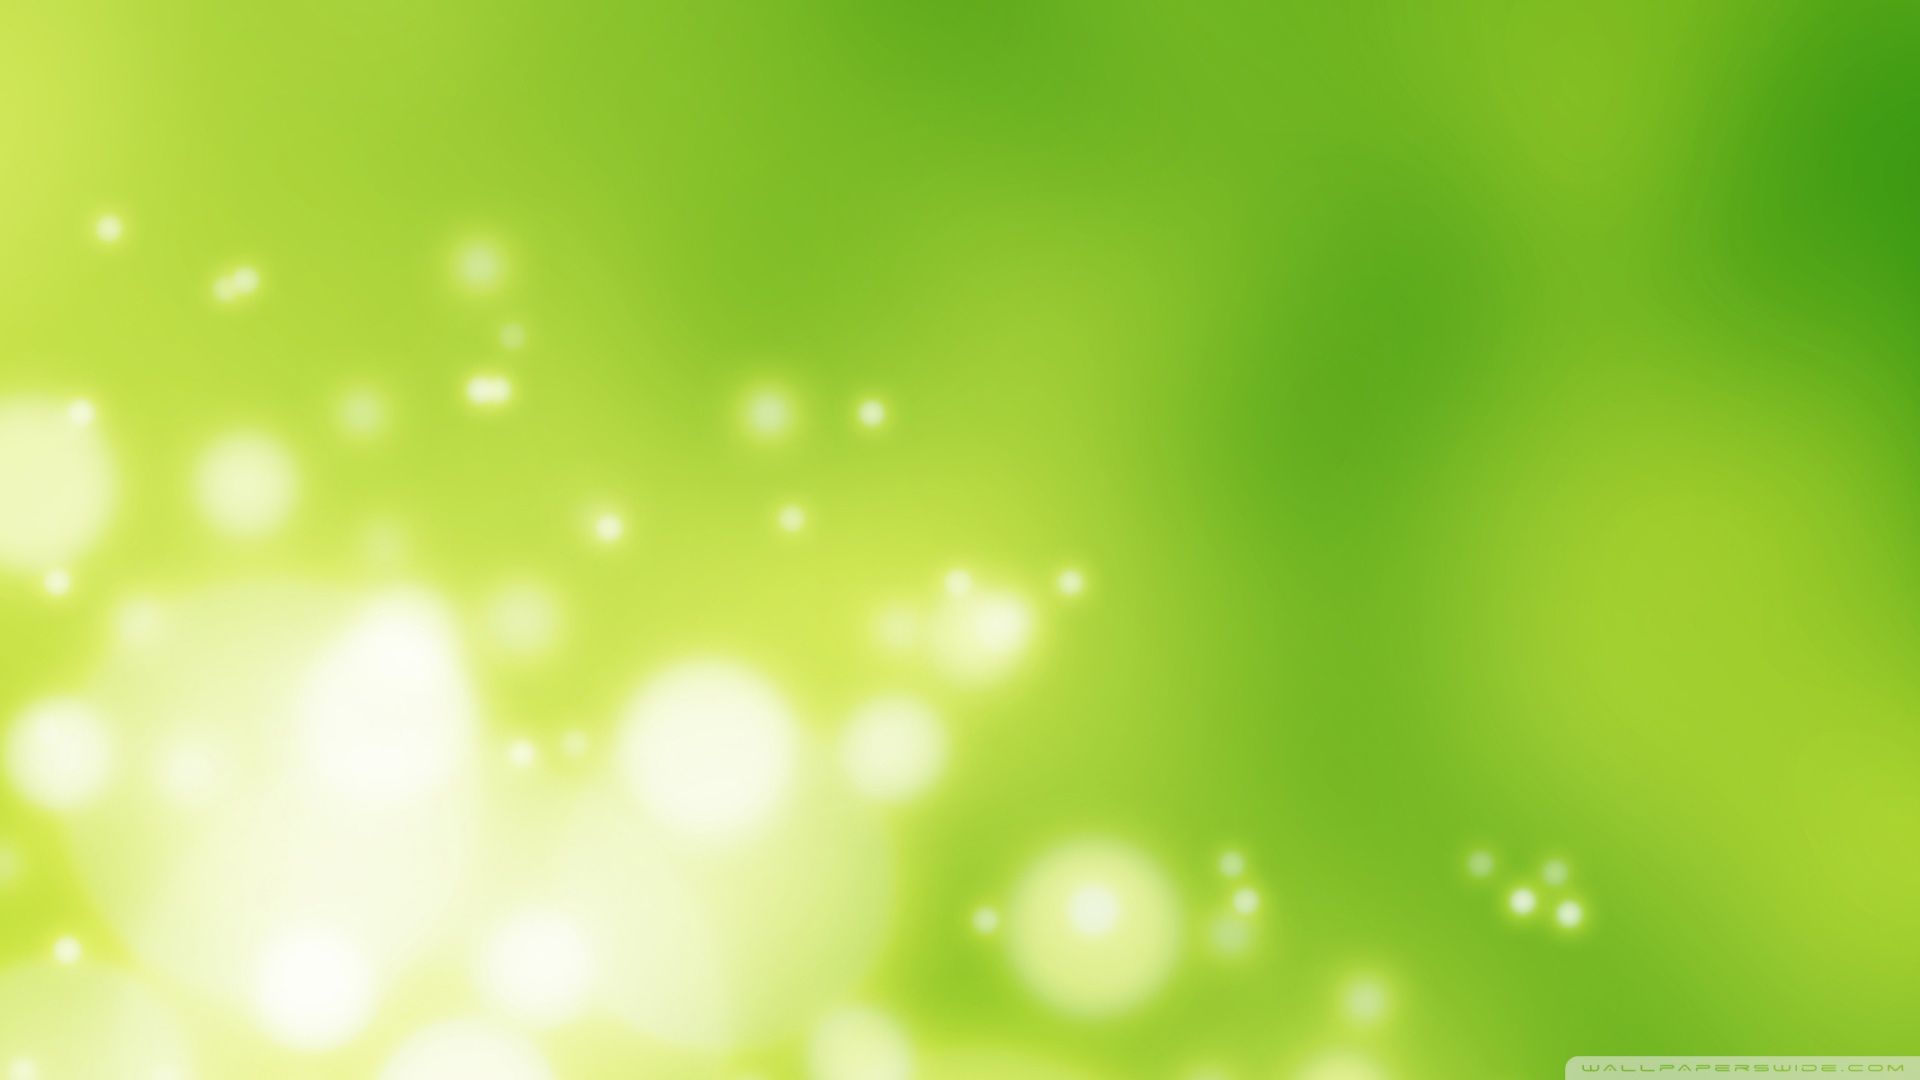 Green Wallpaper 34